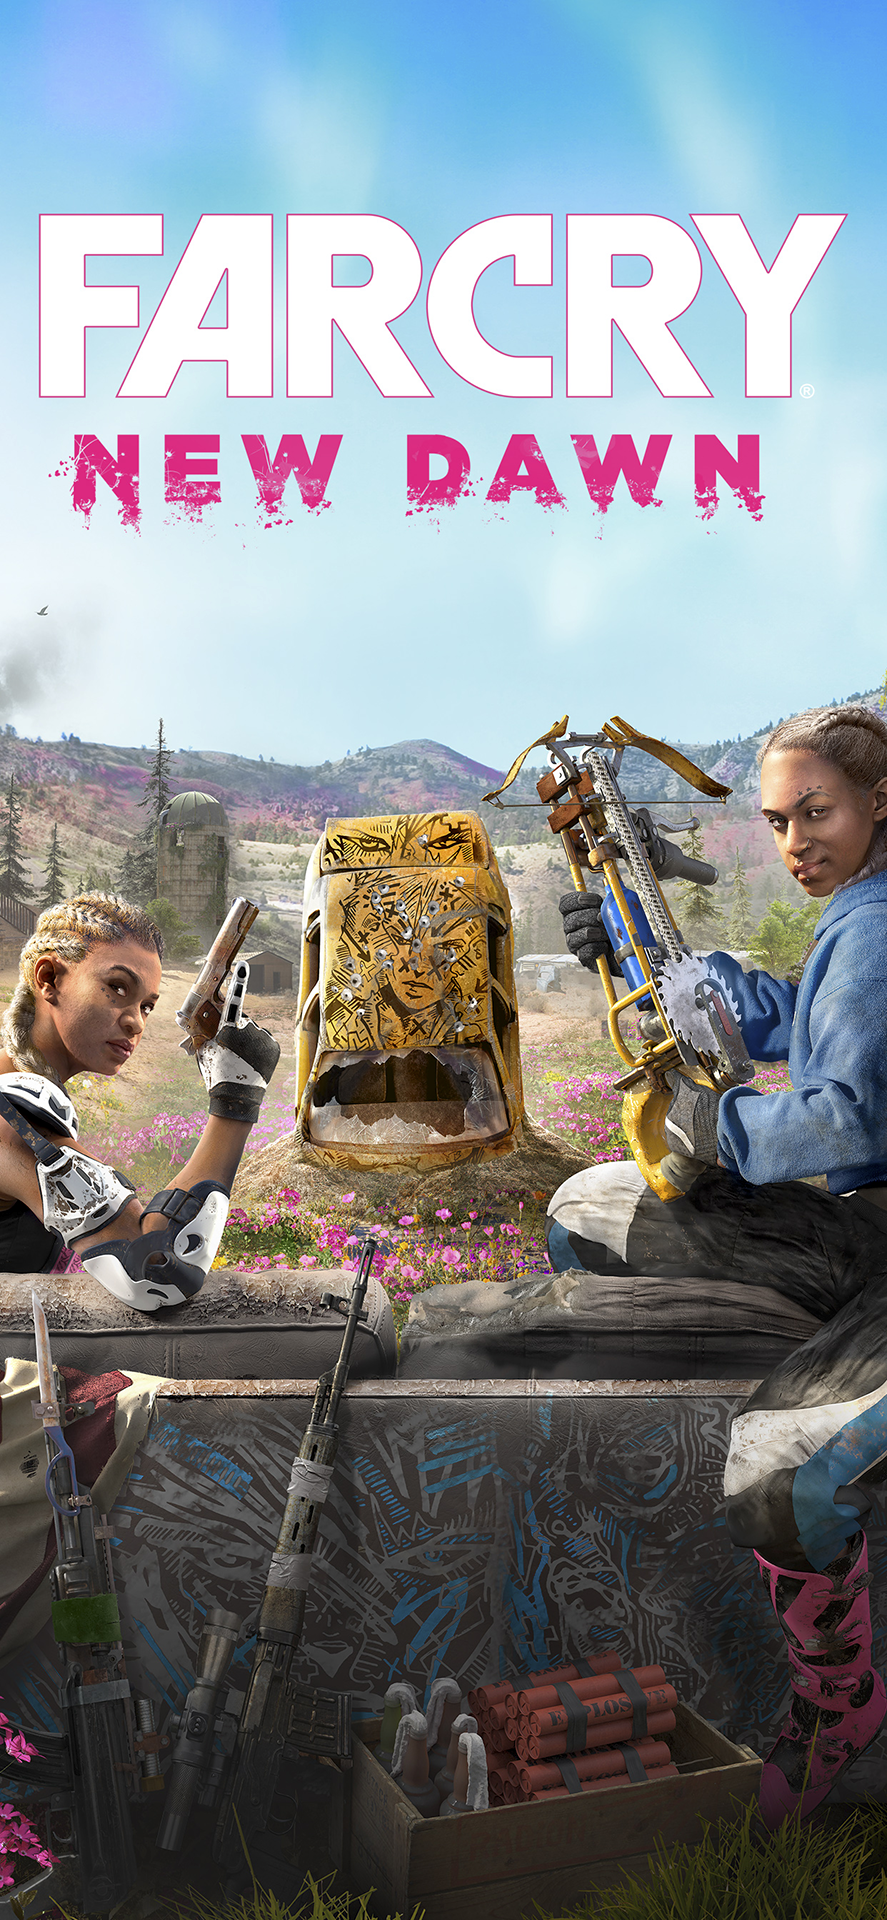 Far Cry New Dawn título fondo de pantalla de escritorio